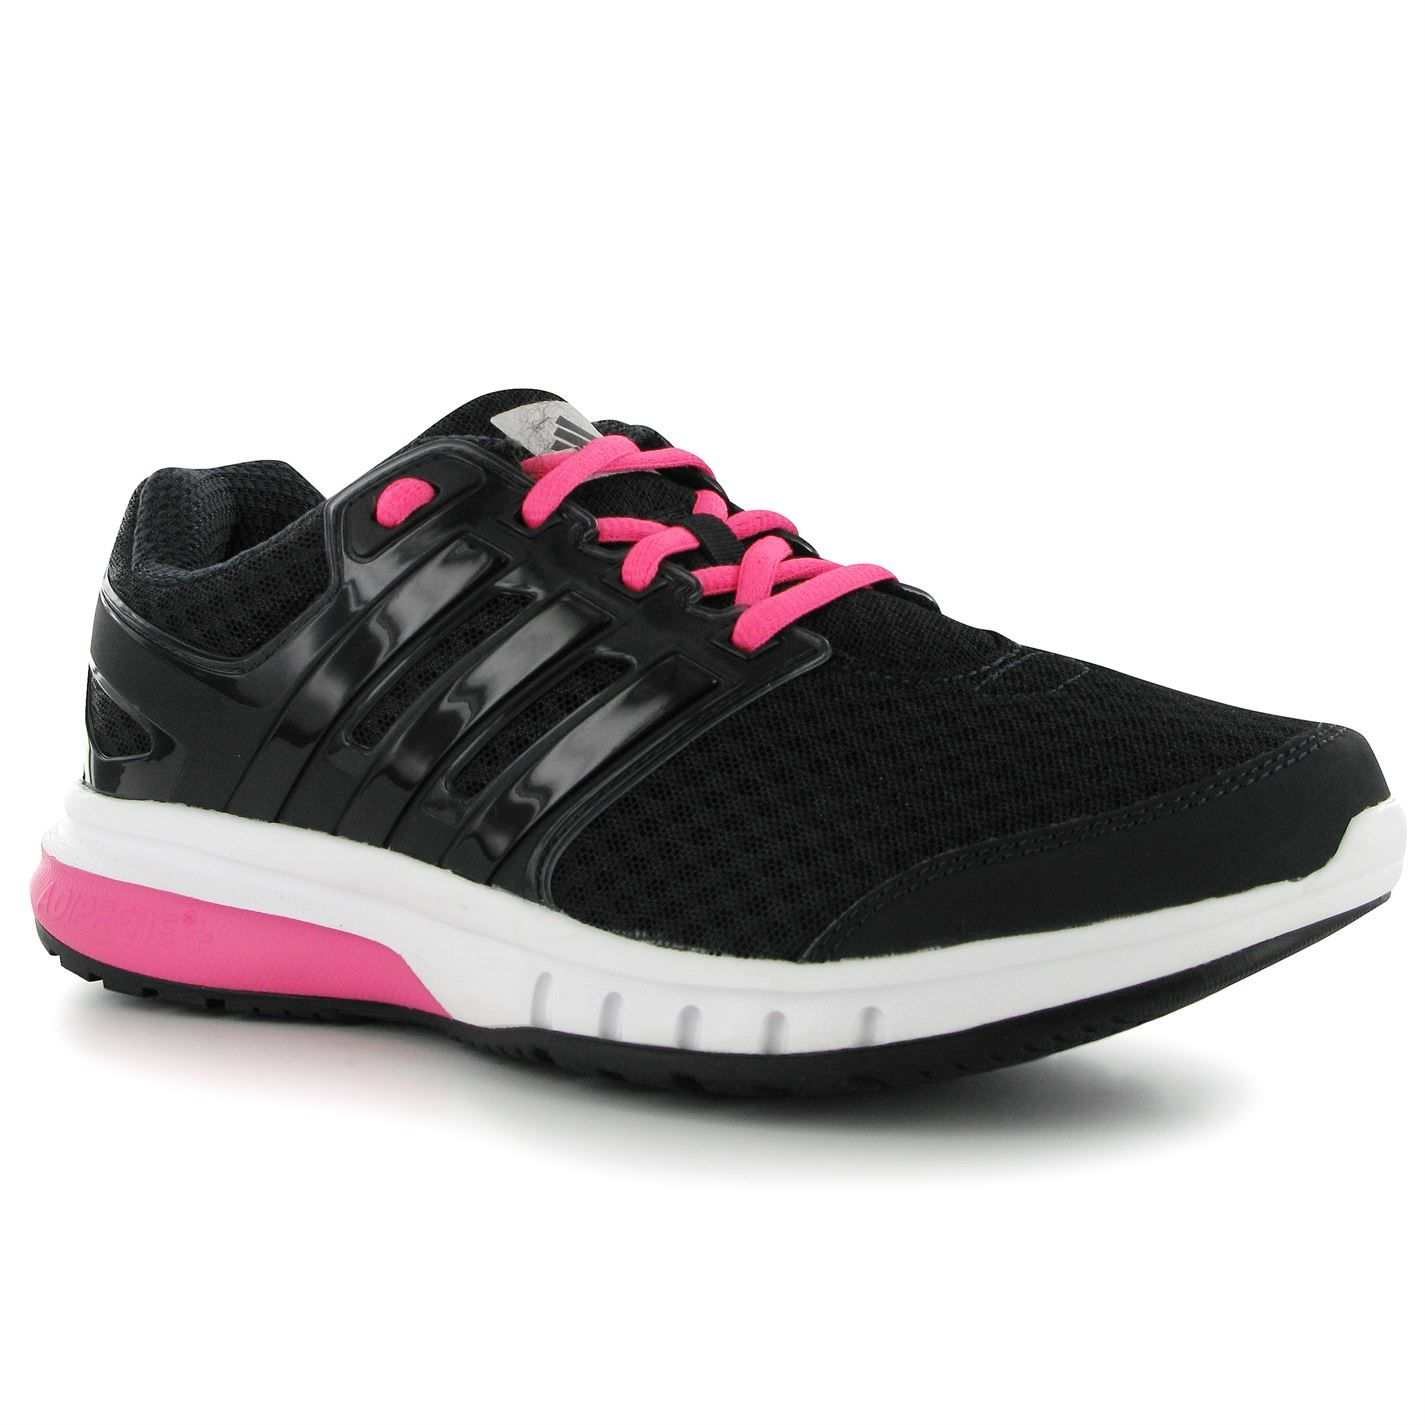 Adidas Black Pink Ladies Running Shoes Running Shoes Elite Falcon 3 Ladies